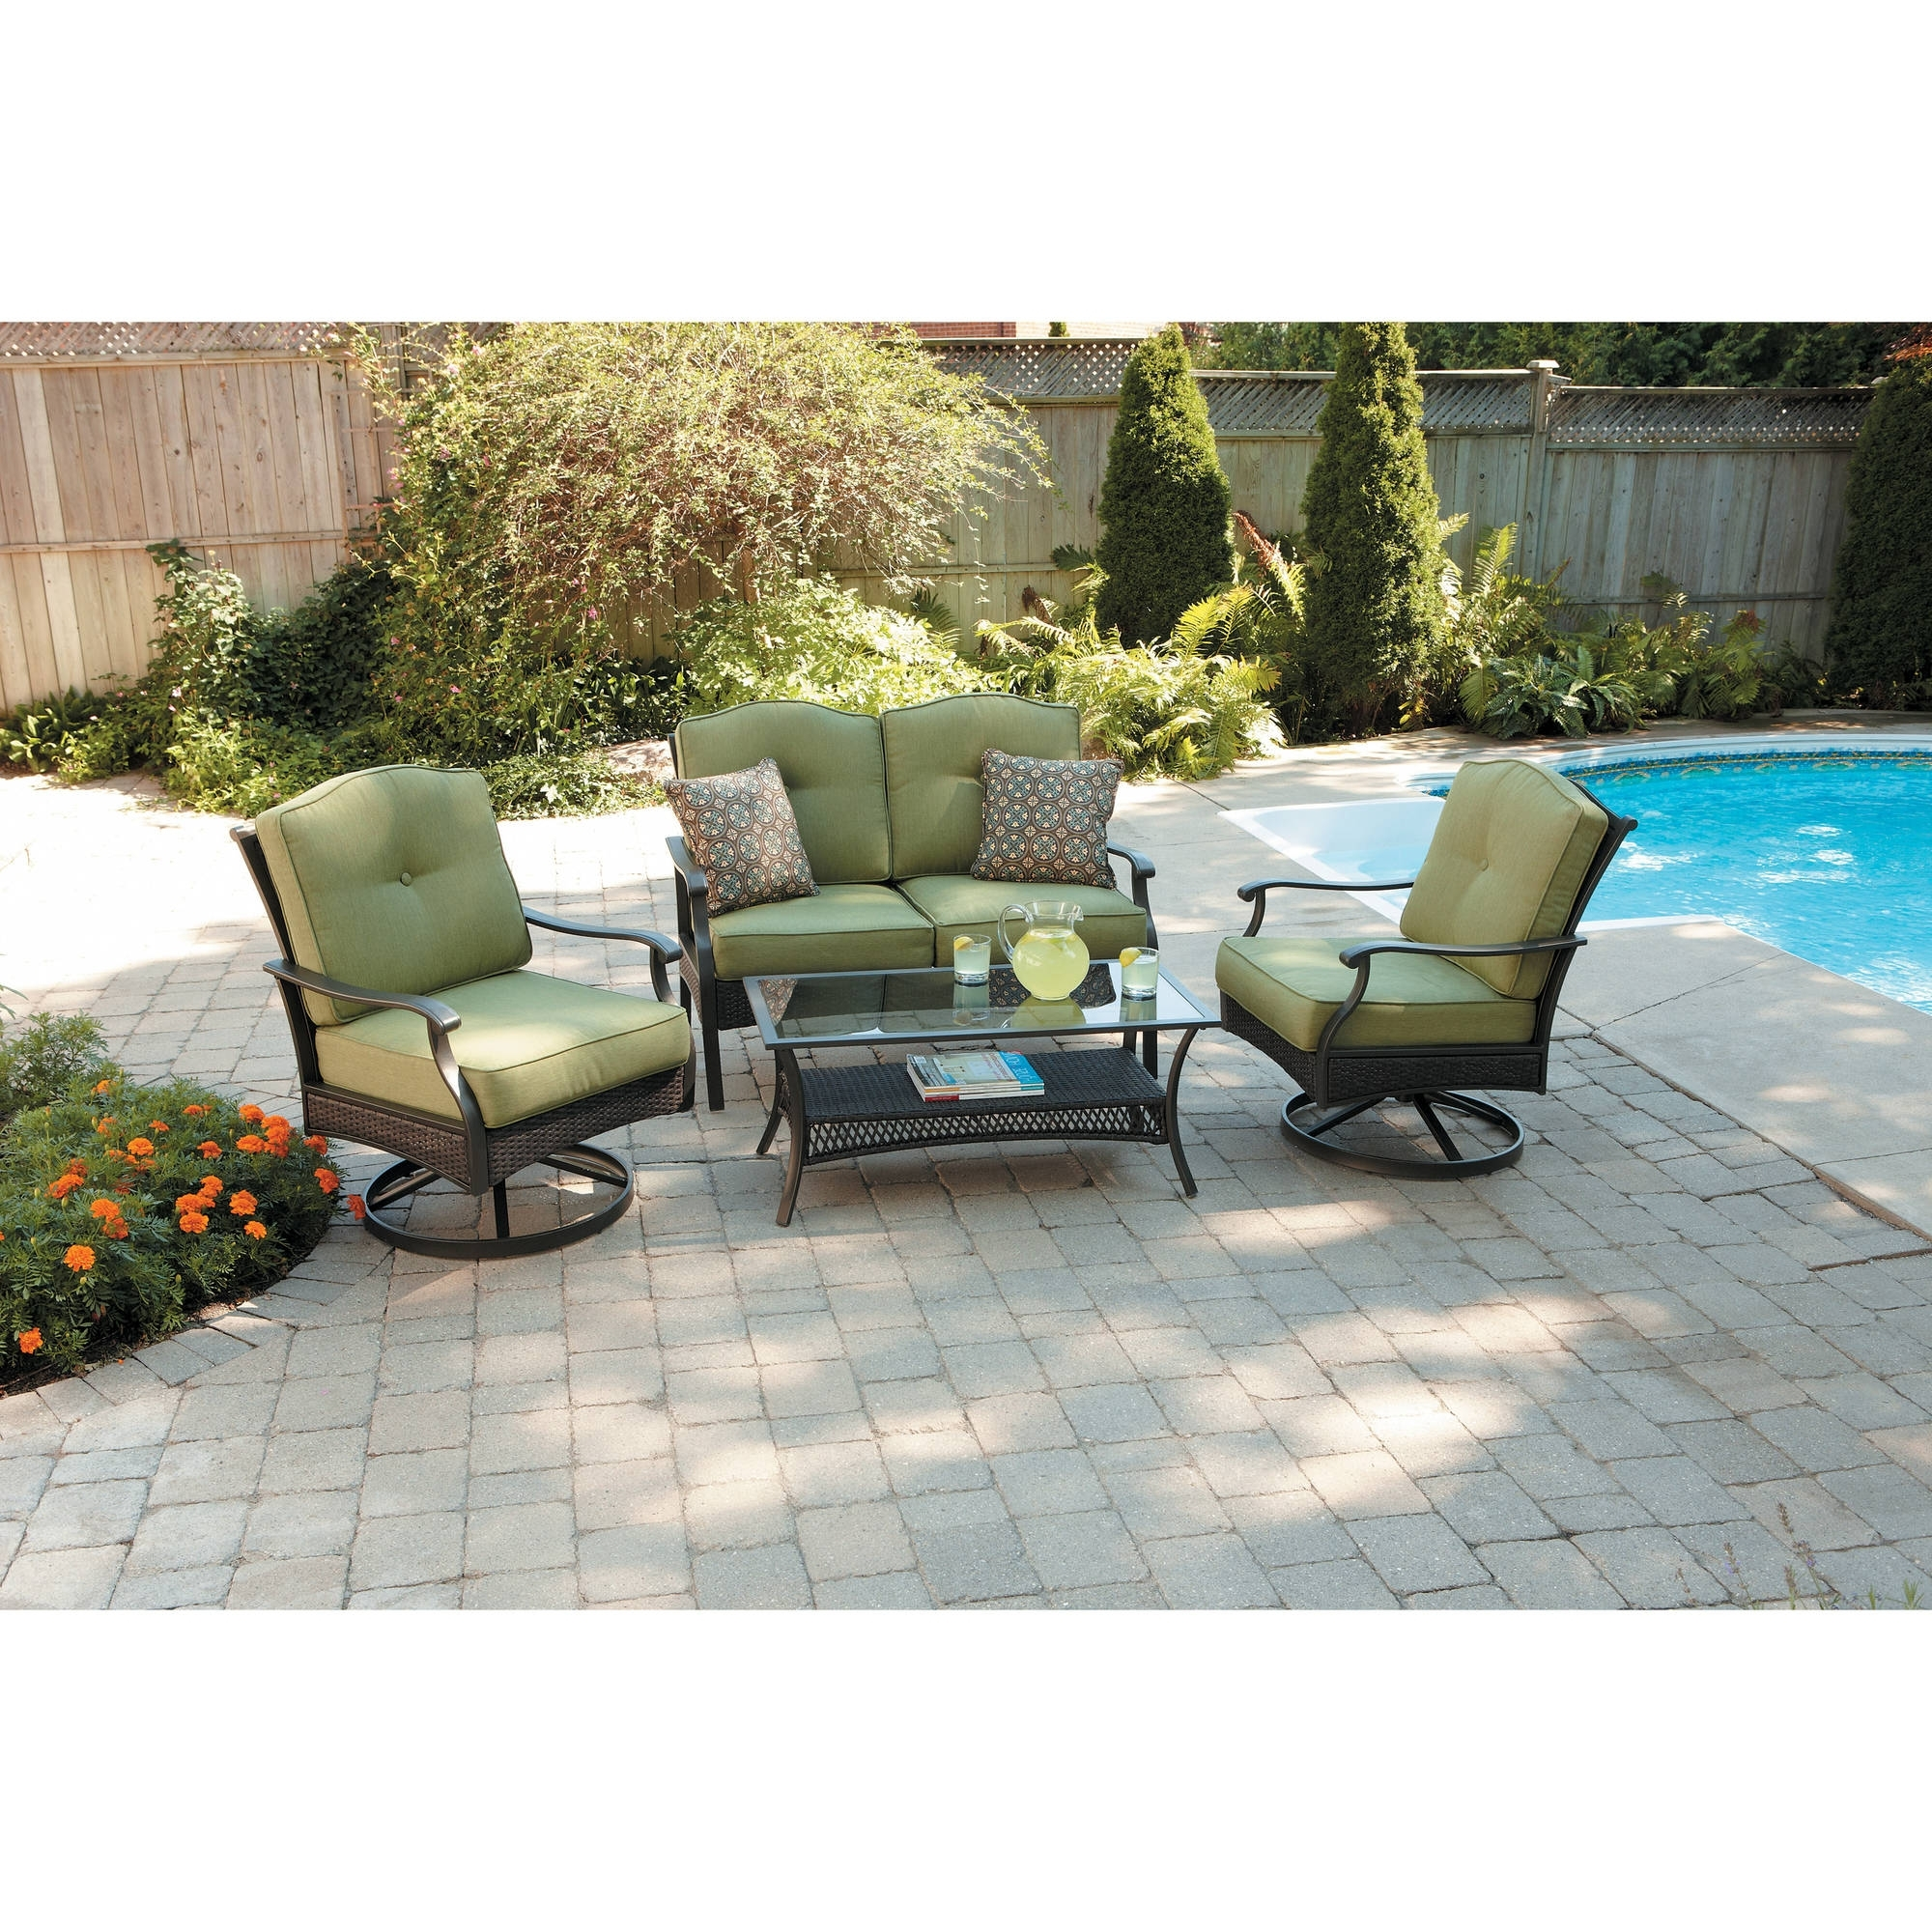 Famous Patio Conversation Sets At Walmart Intended For Better Homes And Gardens Providence 4 Piece Patio Conversation Set (View 3 of 15)